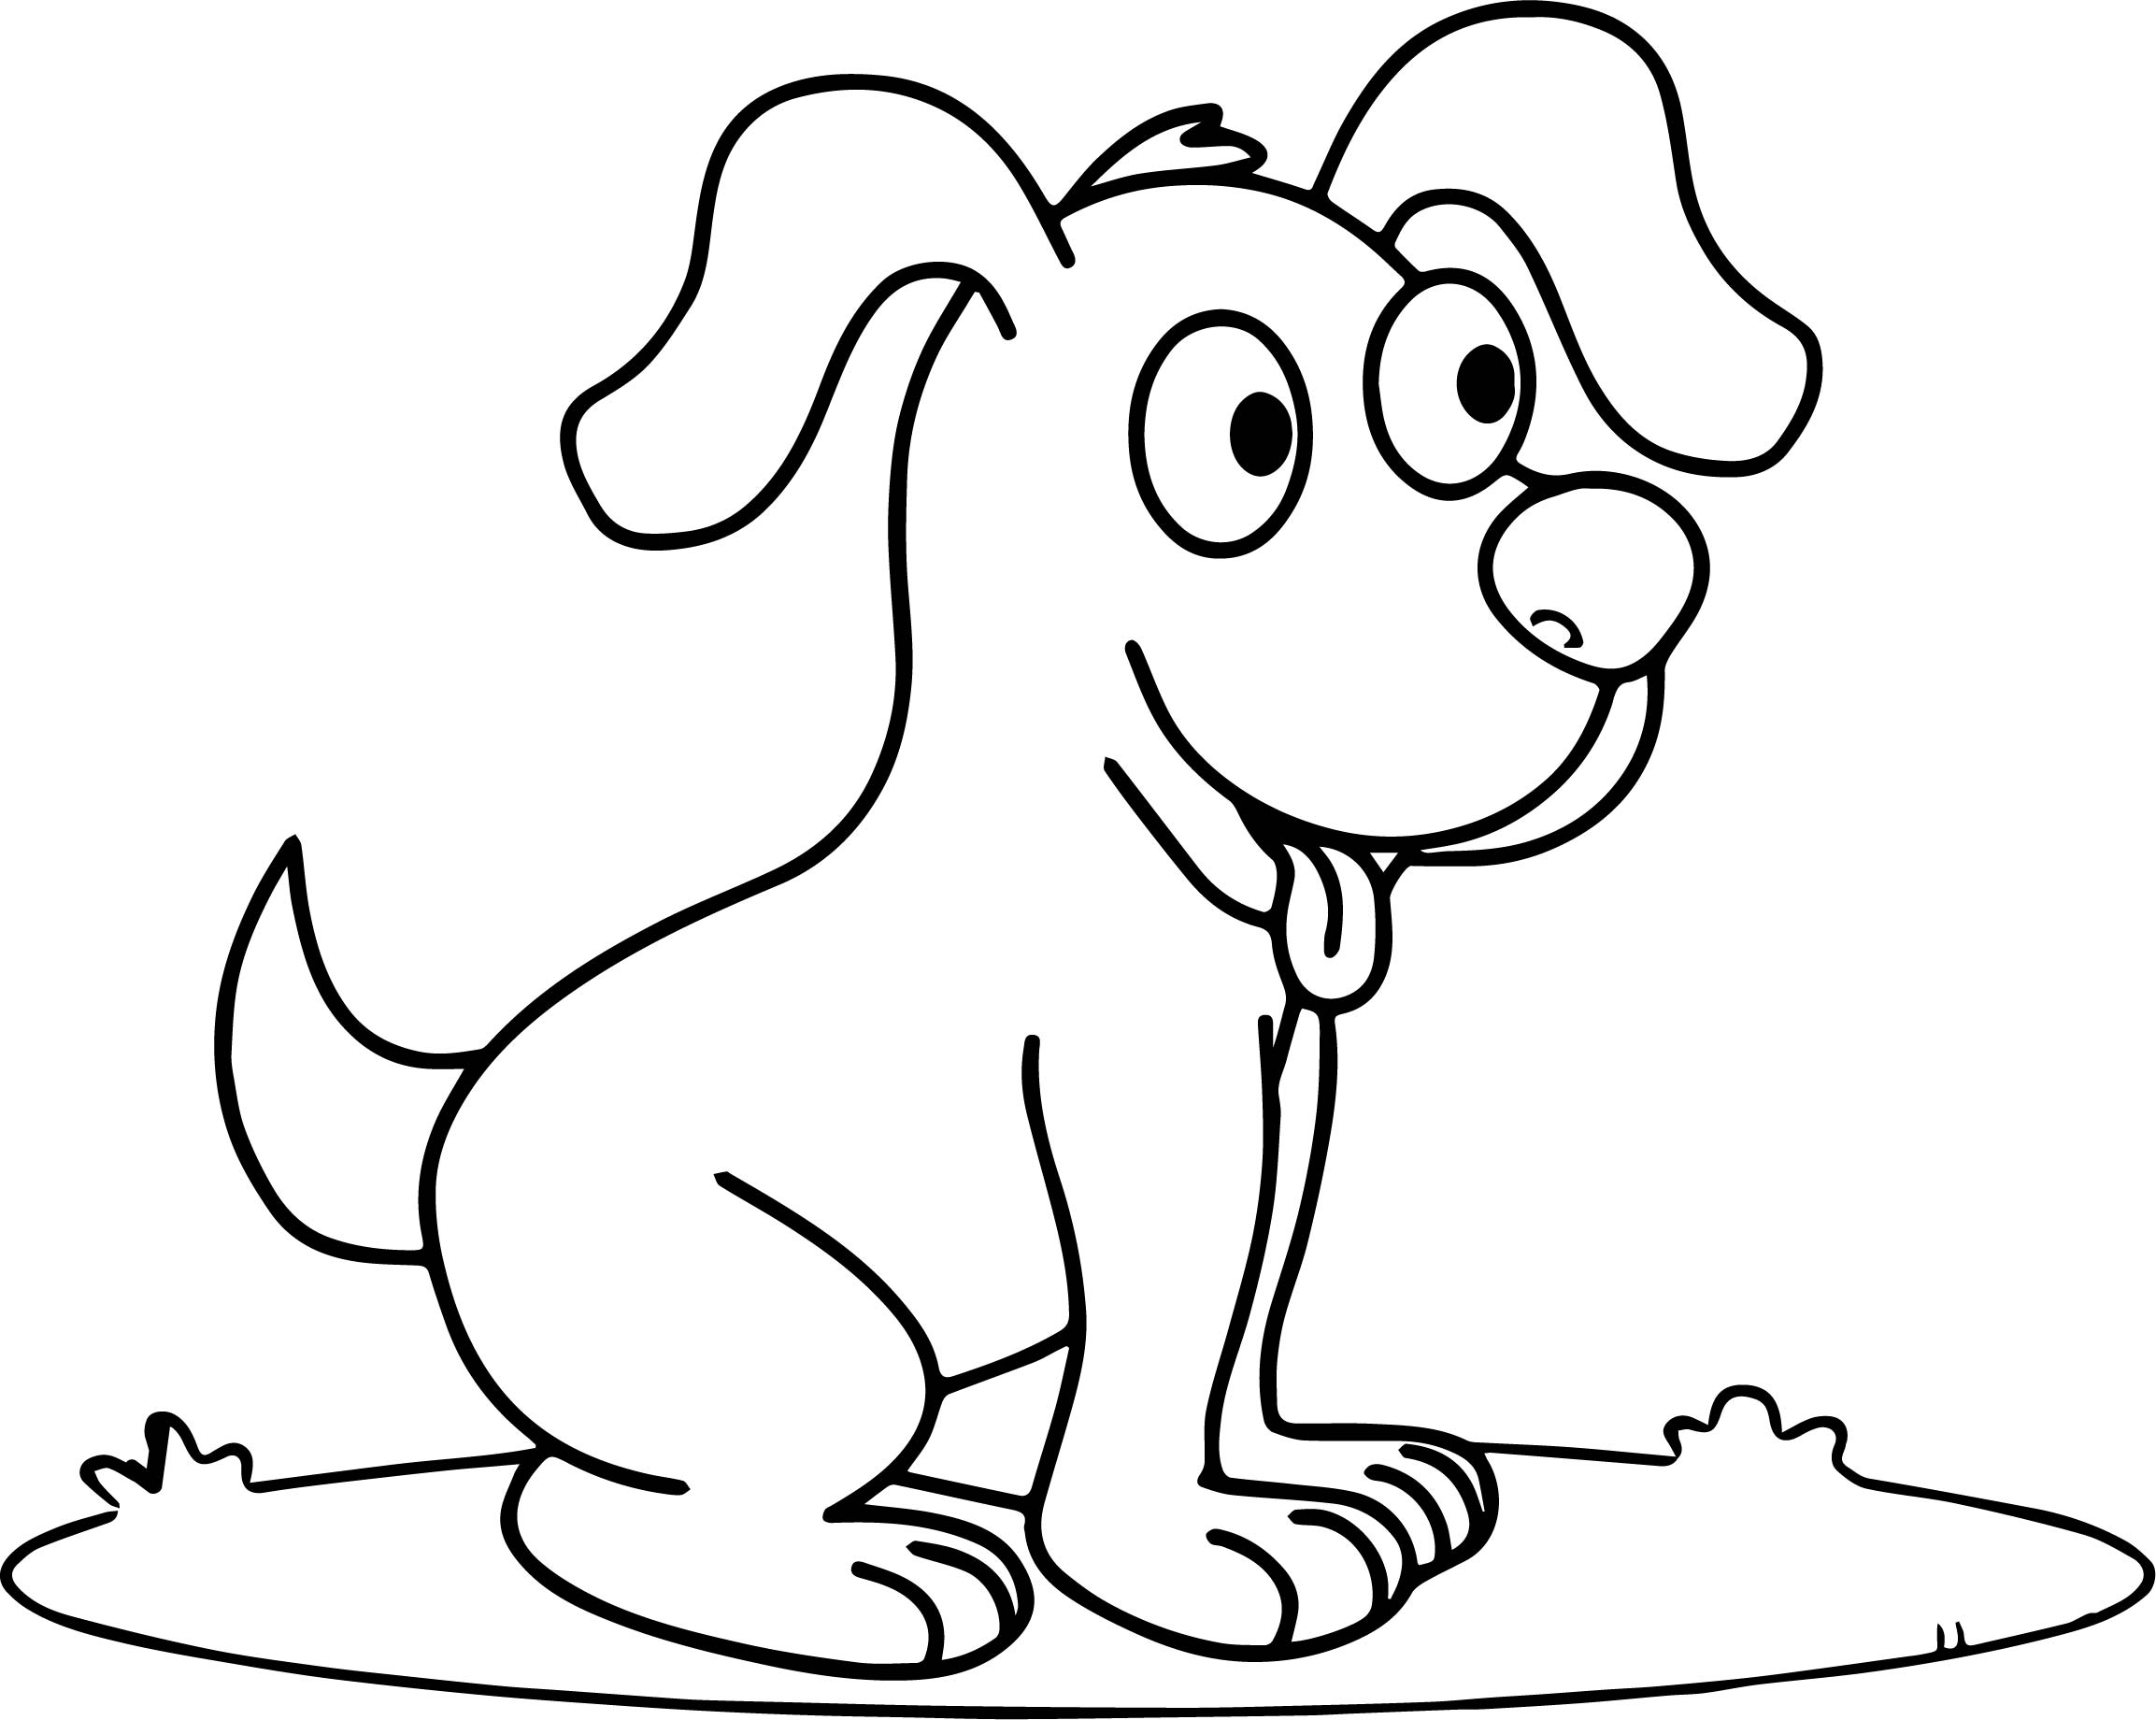 Cute Happy Smiling Puppy Puppy Dog Coloring Page